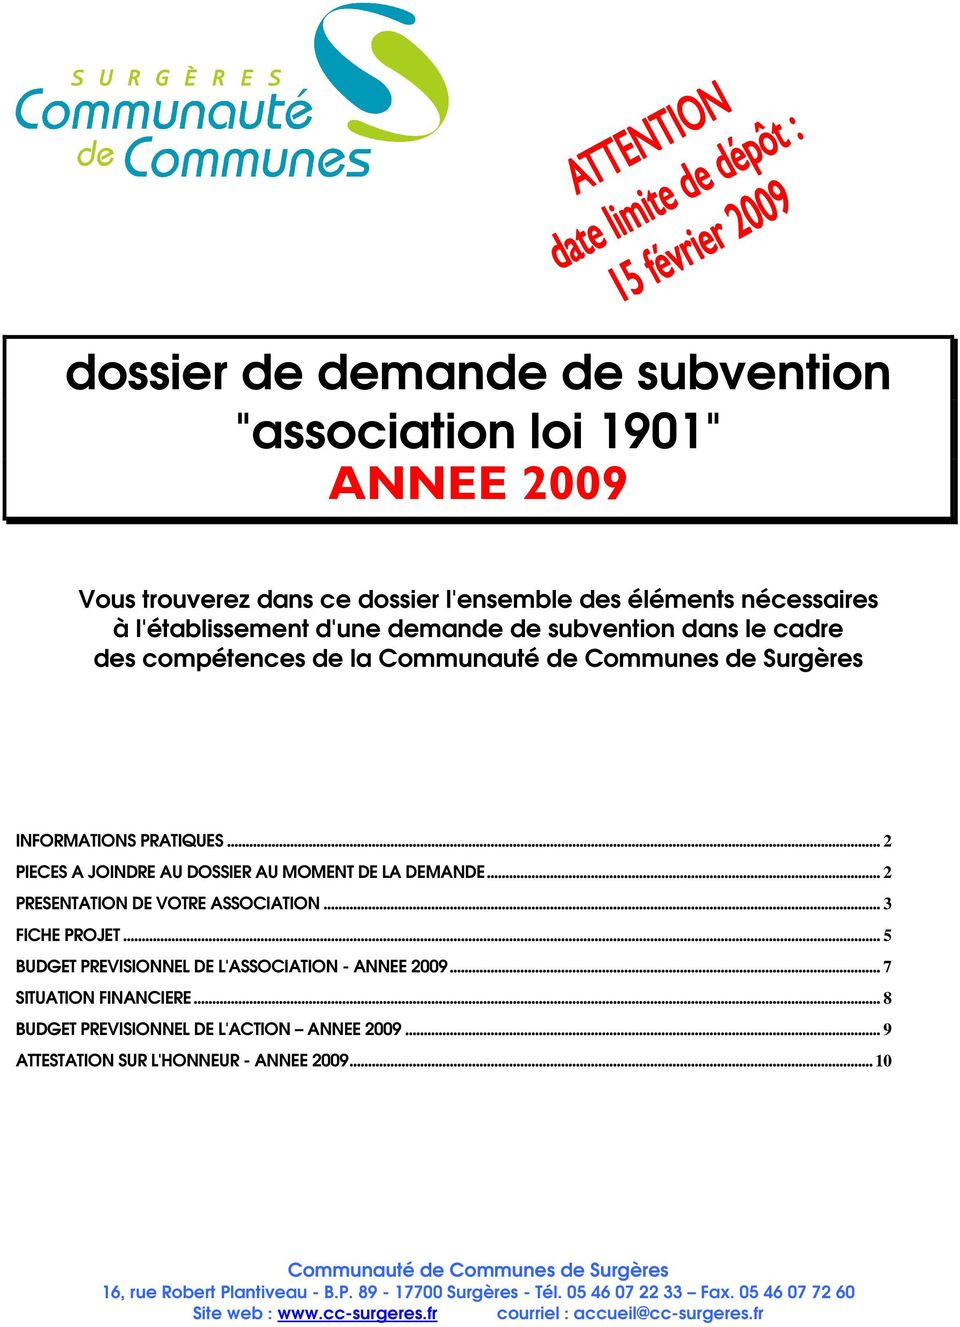 .. 3 FICHE PROJET... 5 BUDGET PREVISIONNEL DE L'ASSOCIATION - ANNEE 2009... 7 SITUATION FINANCIERE... 8 BUDGET PREVISIONNEL DE L'ACTION ANNEE 2009... 9 ATTESTATION SUR L'HONNEUR - ANNEE 2009.